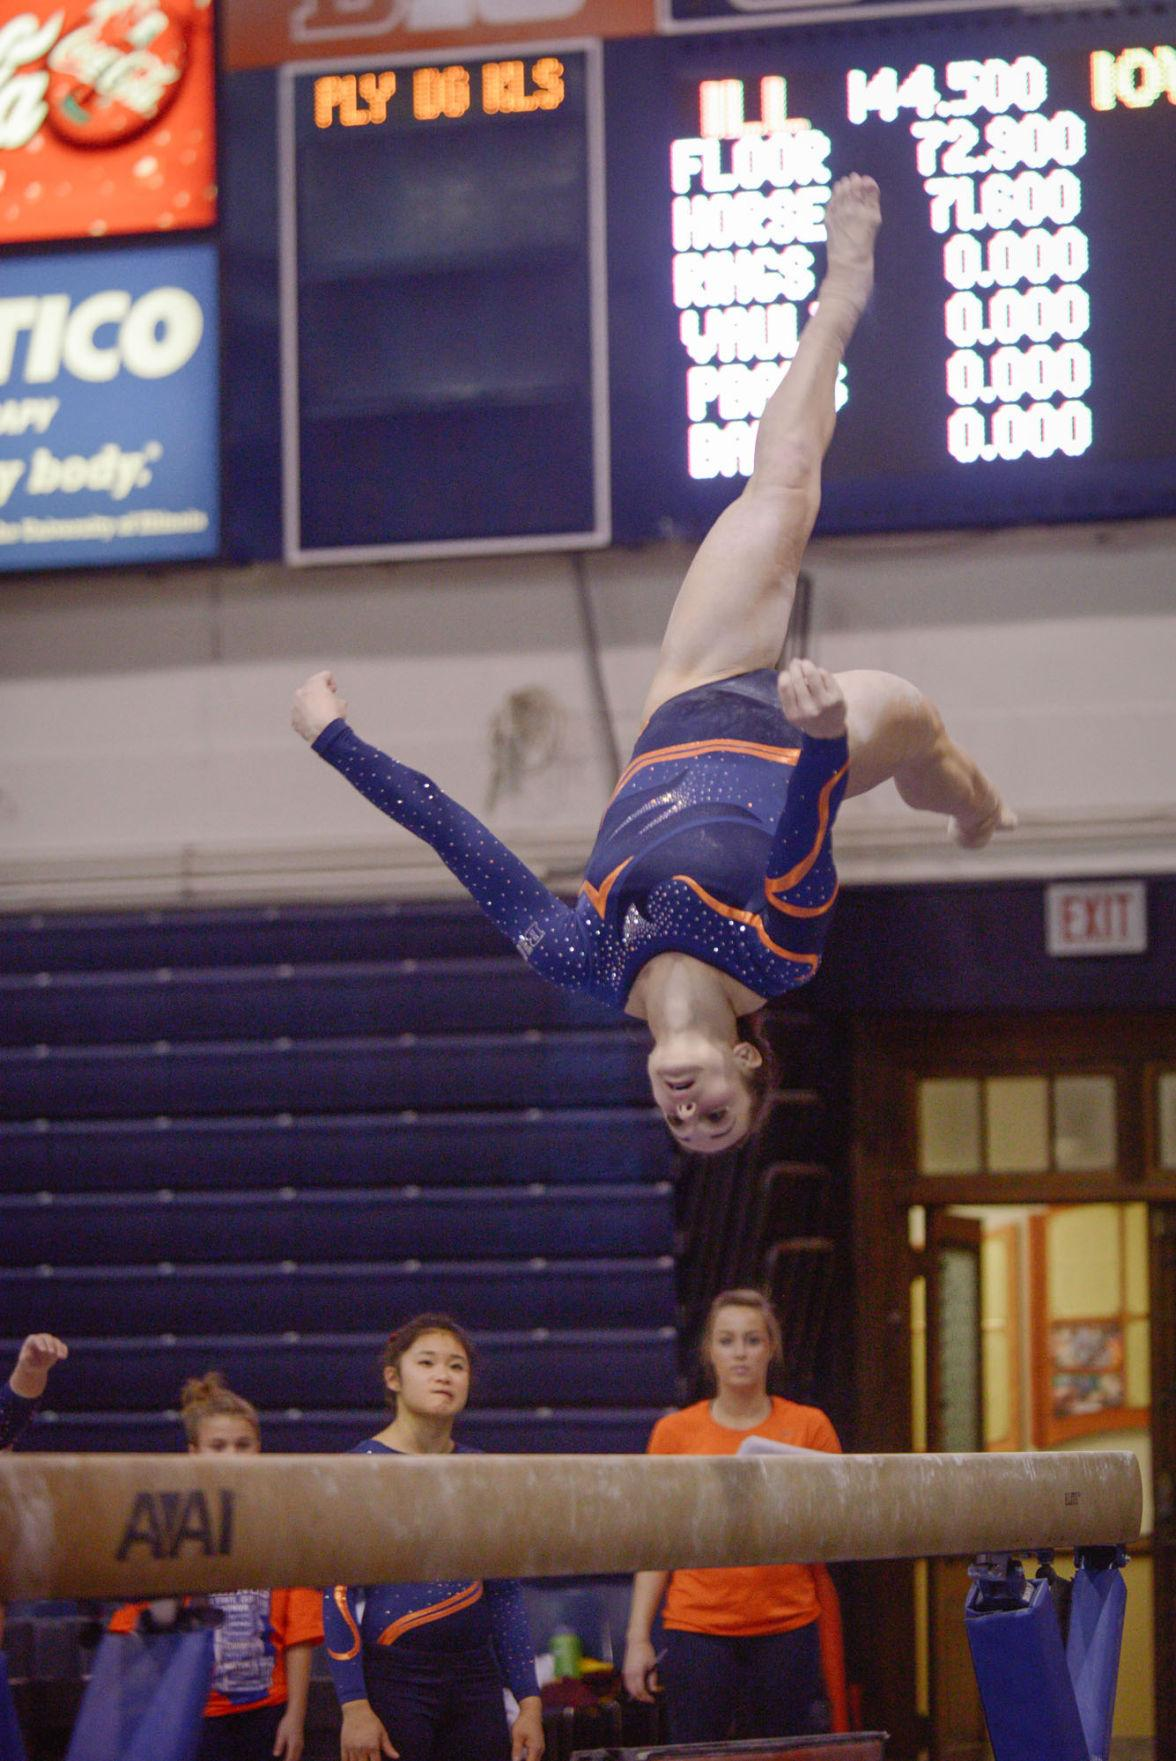 Illinois' Giana O'Connor performs a routine on the balance beam during the meet against Minnesota at Huff Hall on Saturday, Feb. 7. The Illini won 195.775-195.375.